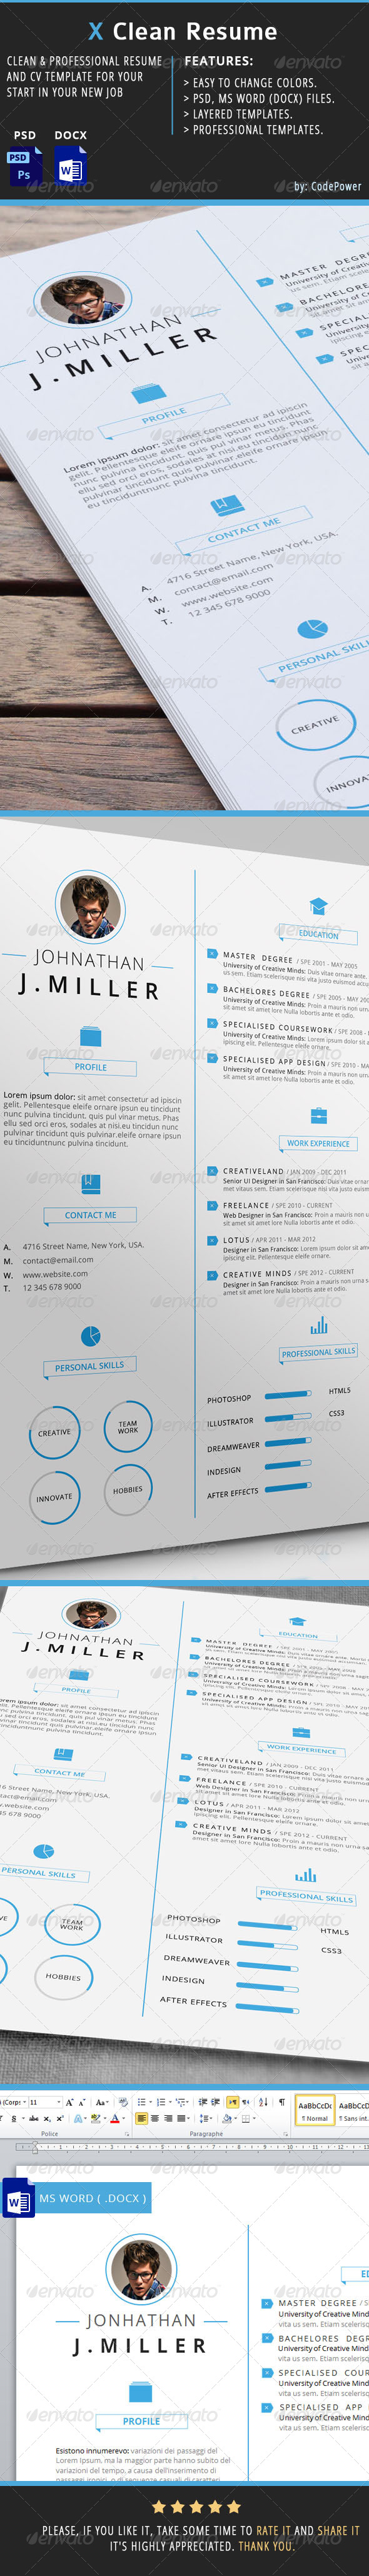 GraphicRiver X Clean Resume 6883758